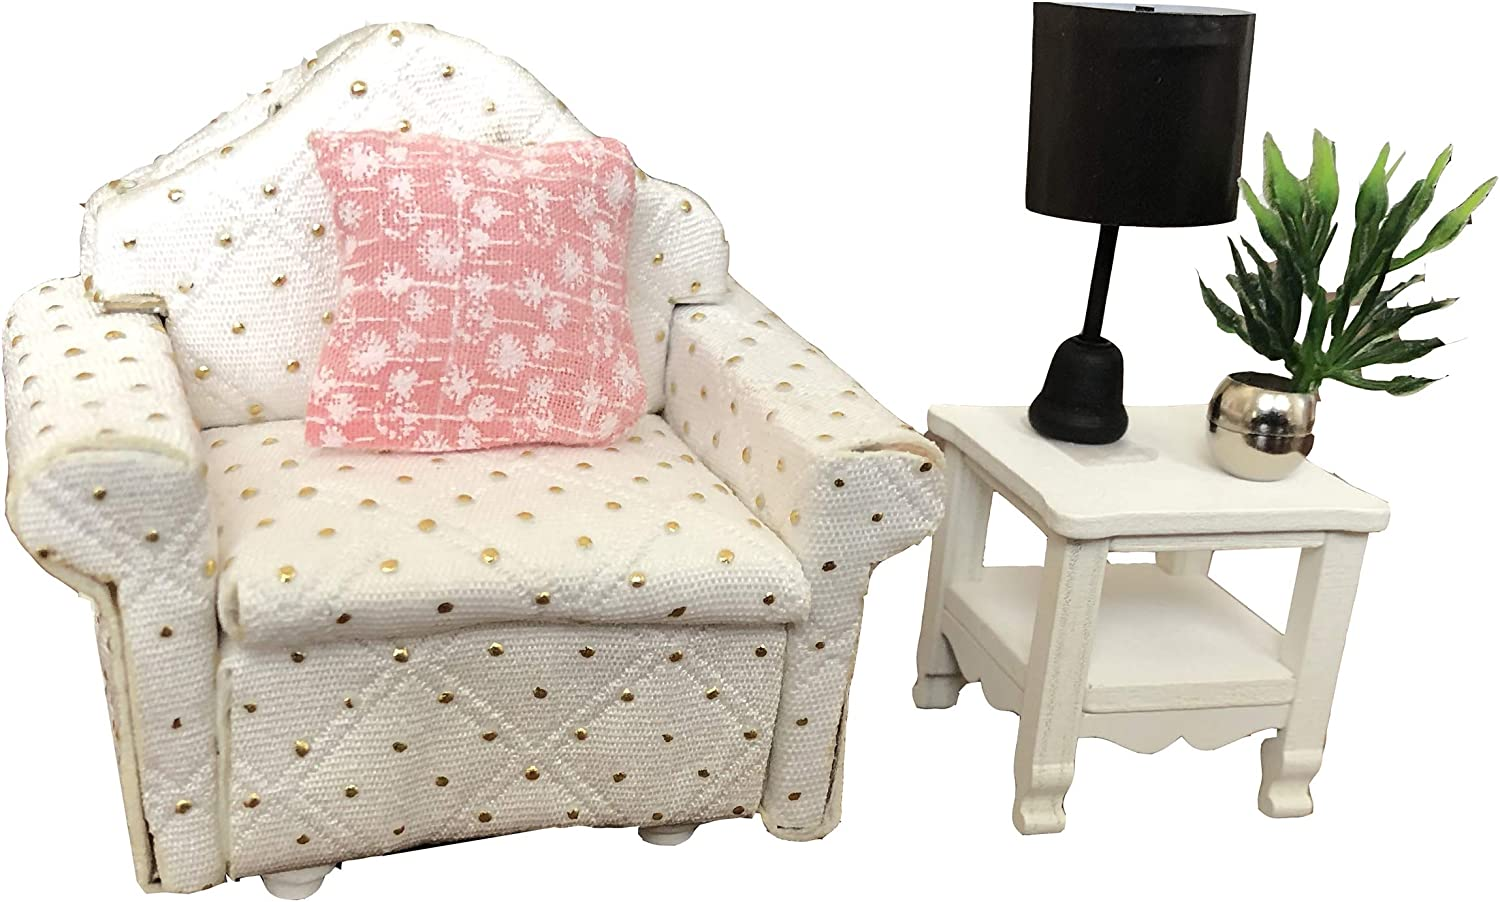 Inusitus DIY Dollhouse Kit | Sofa Chair Set | Miniature Furniture | Dolls House Kits | Requires Assembly | 1/18 Scale (Sofa-Chair-White)